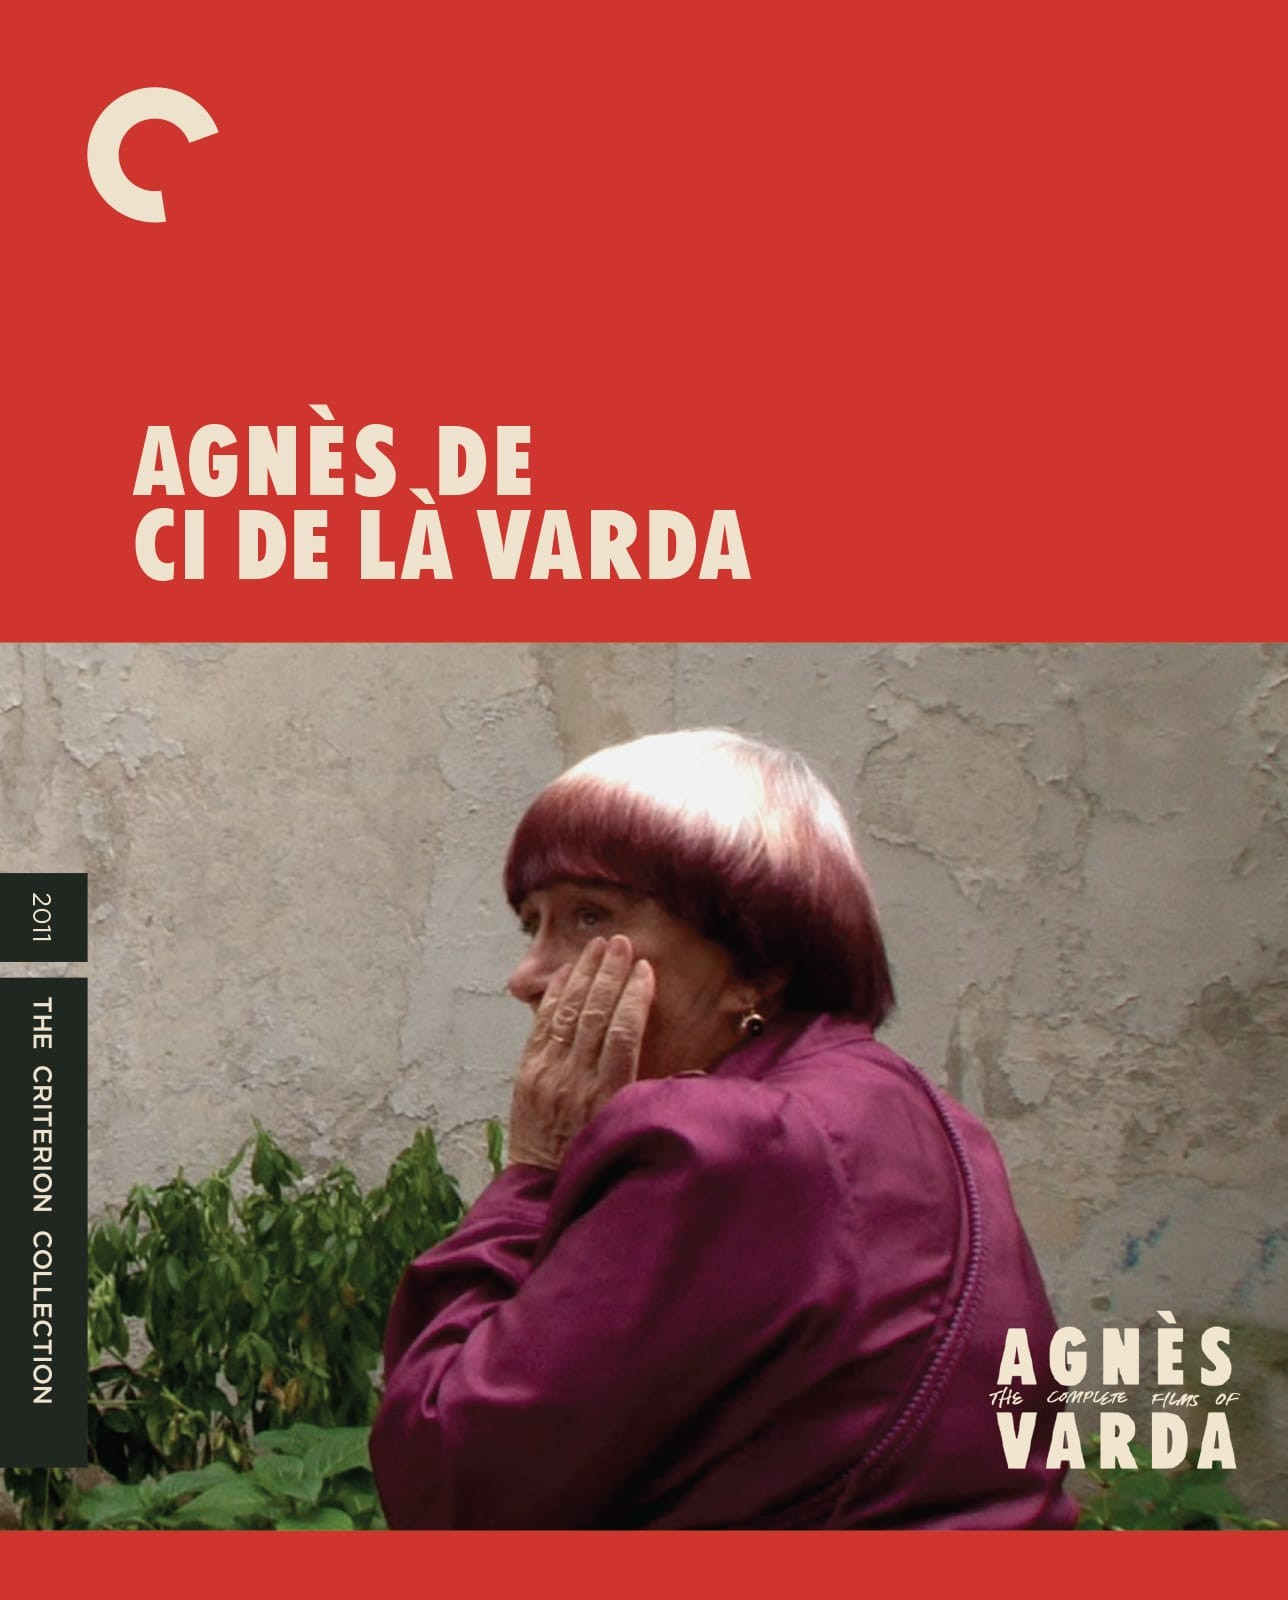 Agnès de ci de là Varda (2011) | The Criterion Collection